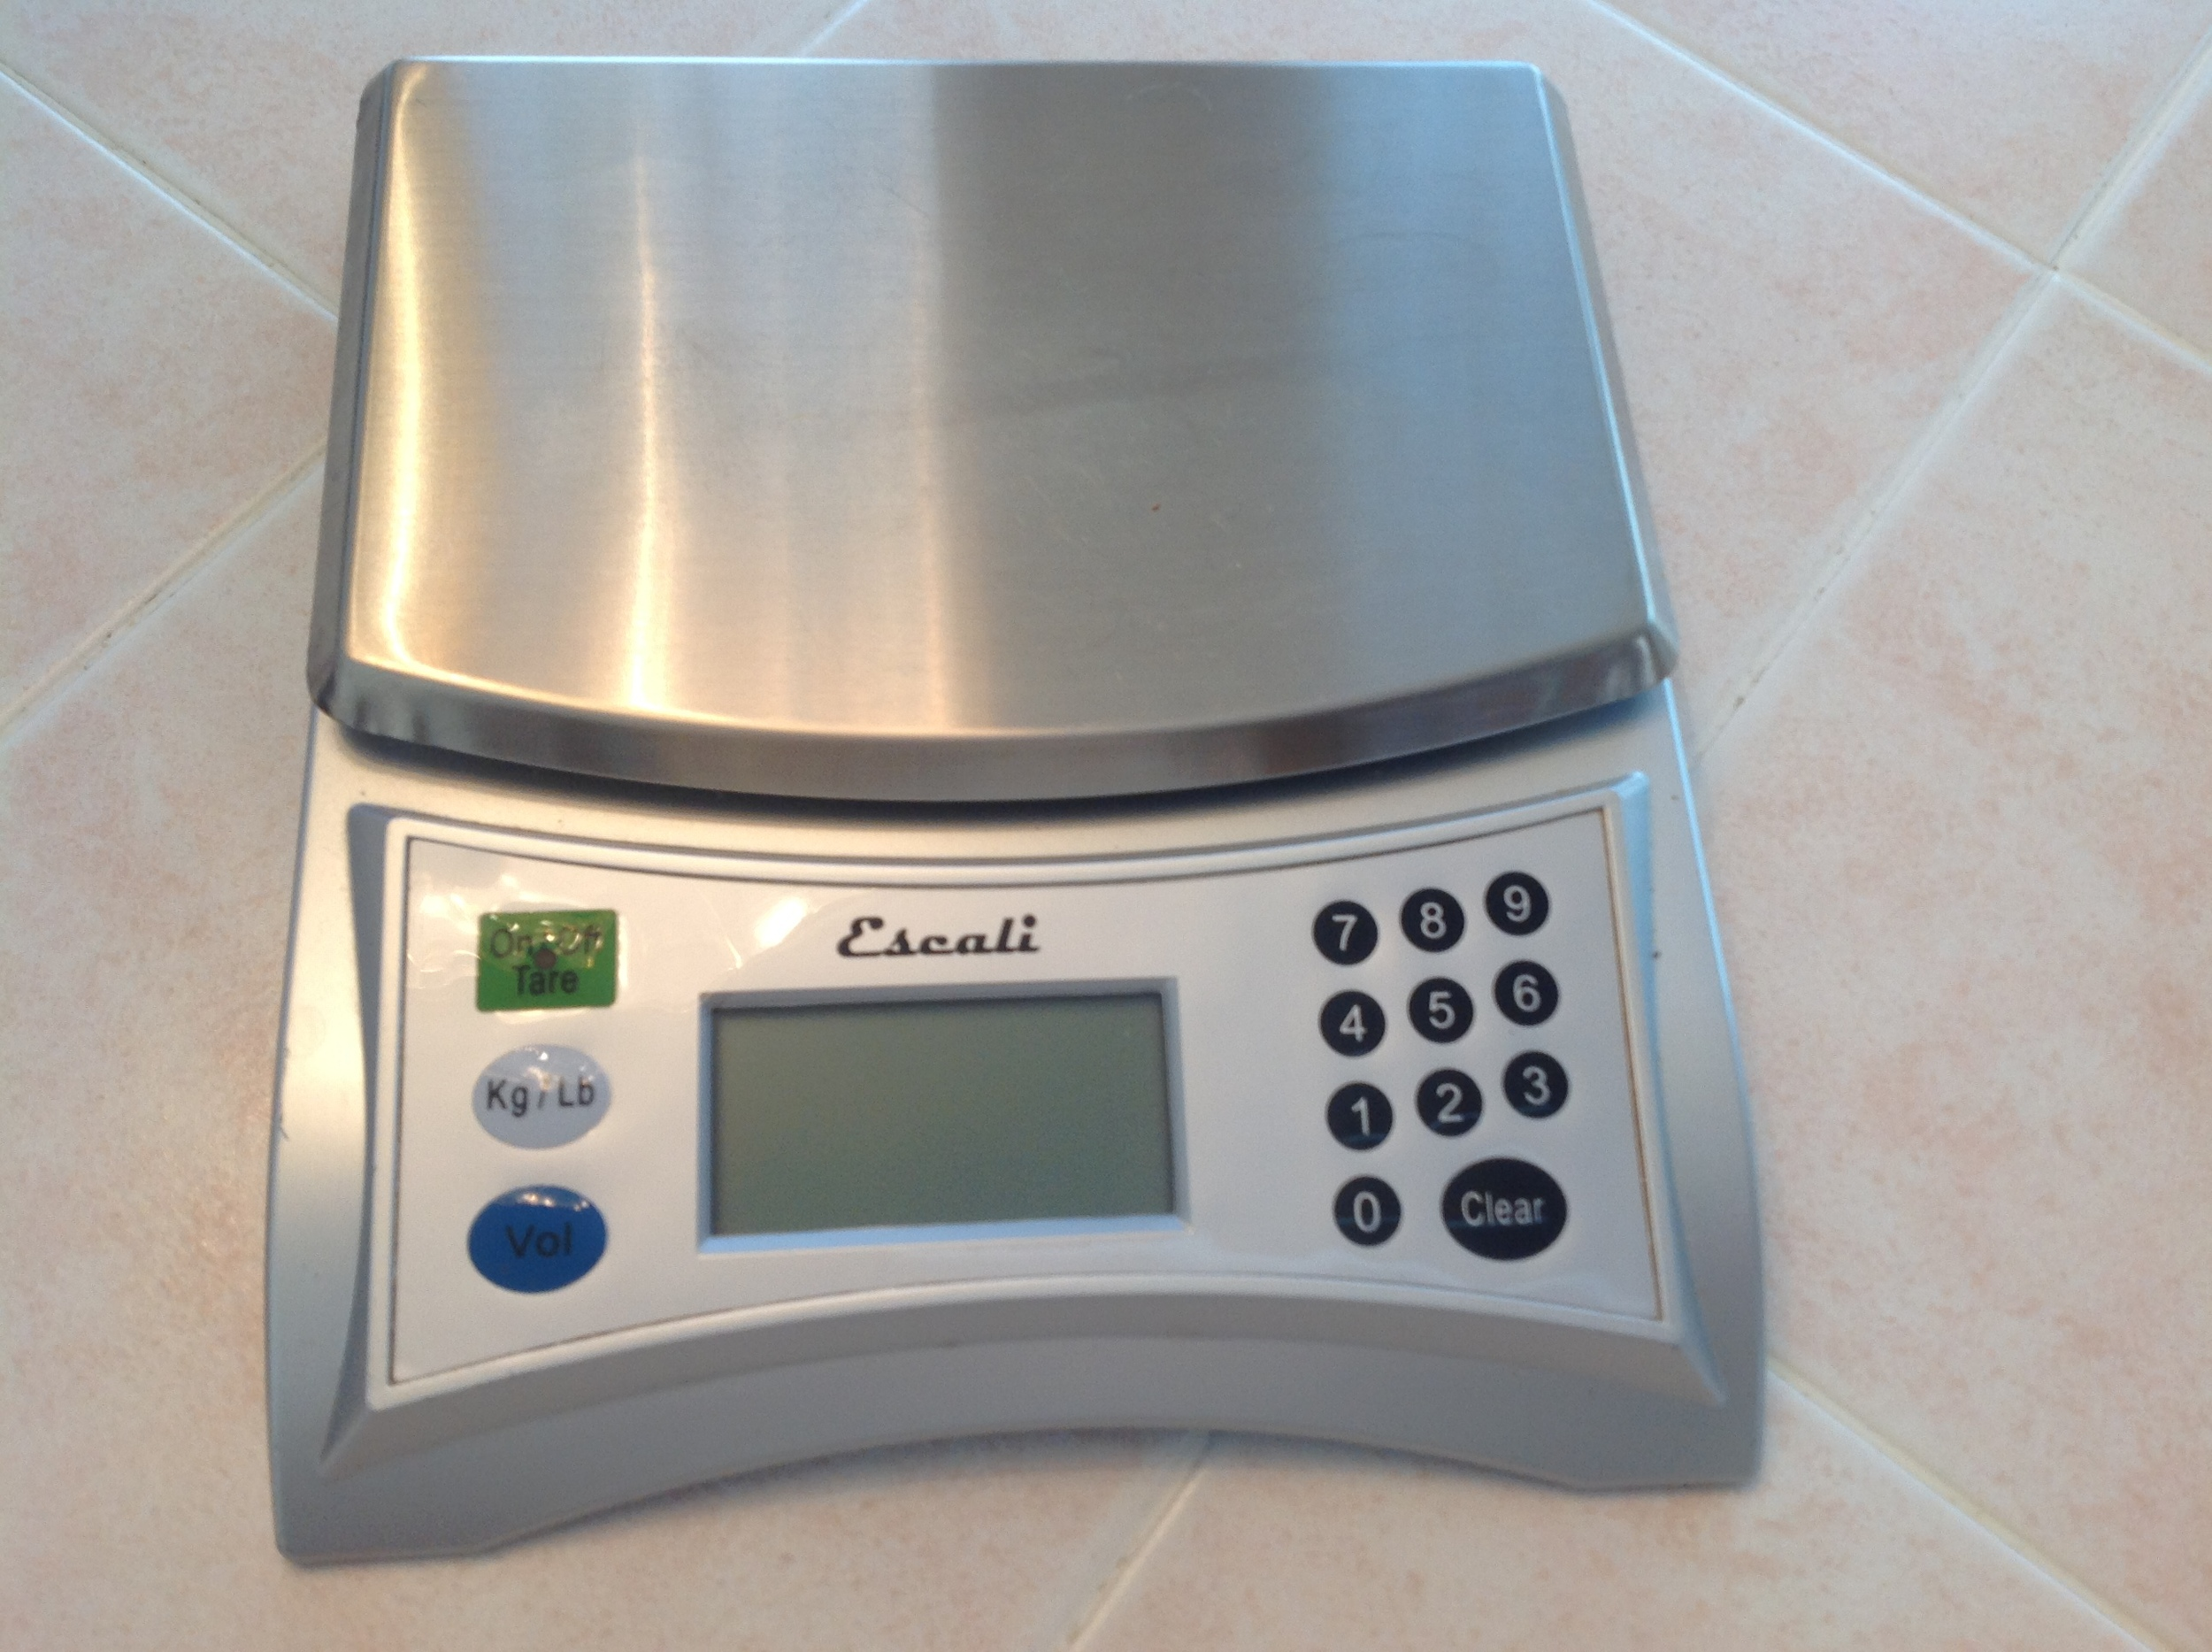 Food scale - one of my essential baking tools